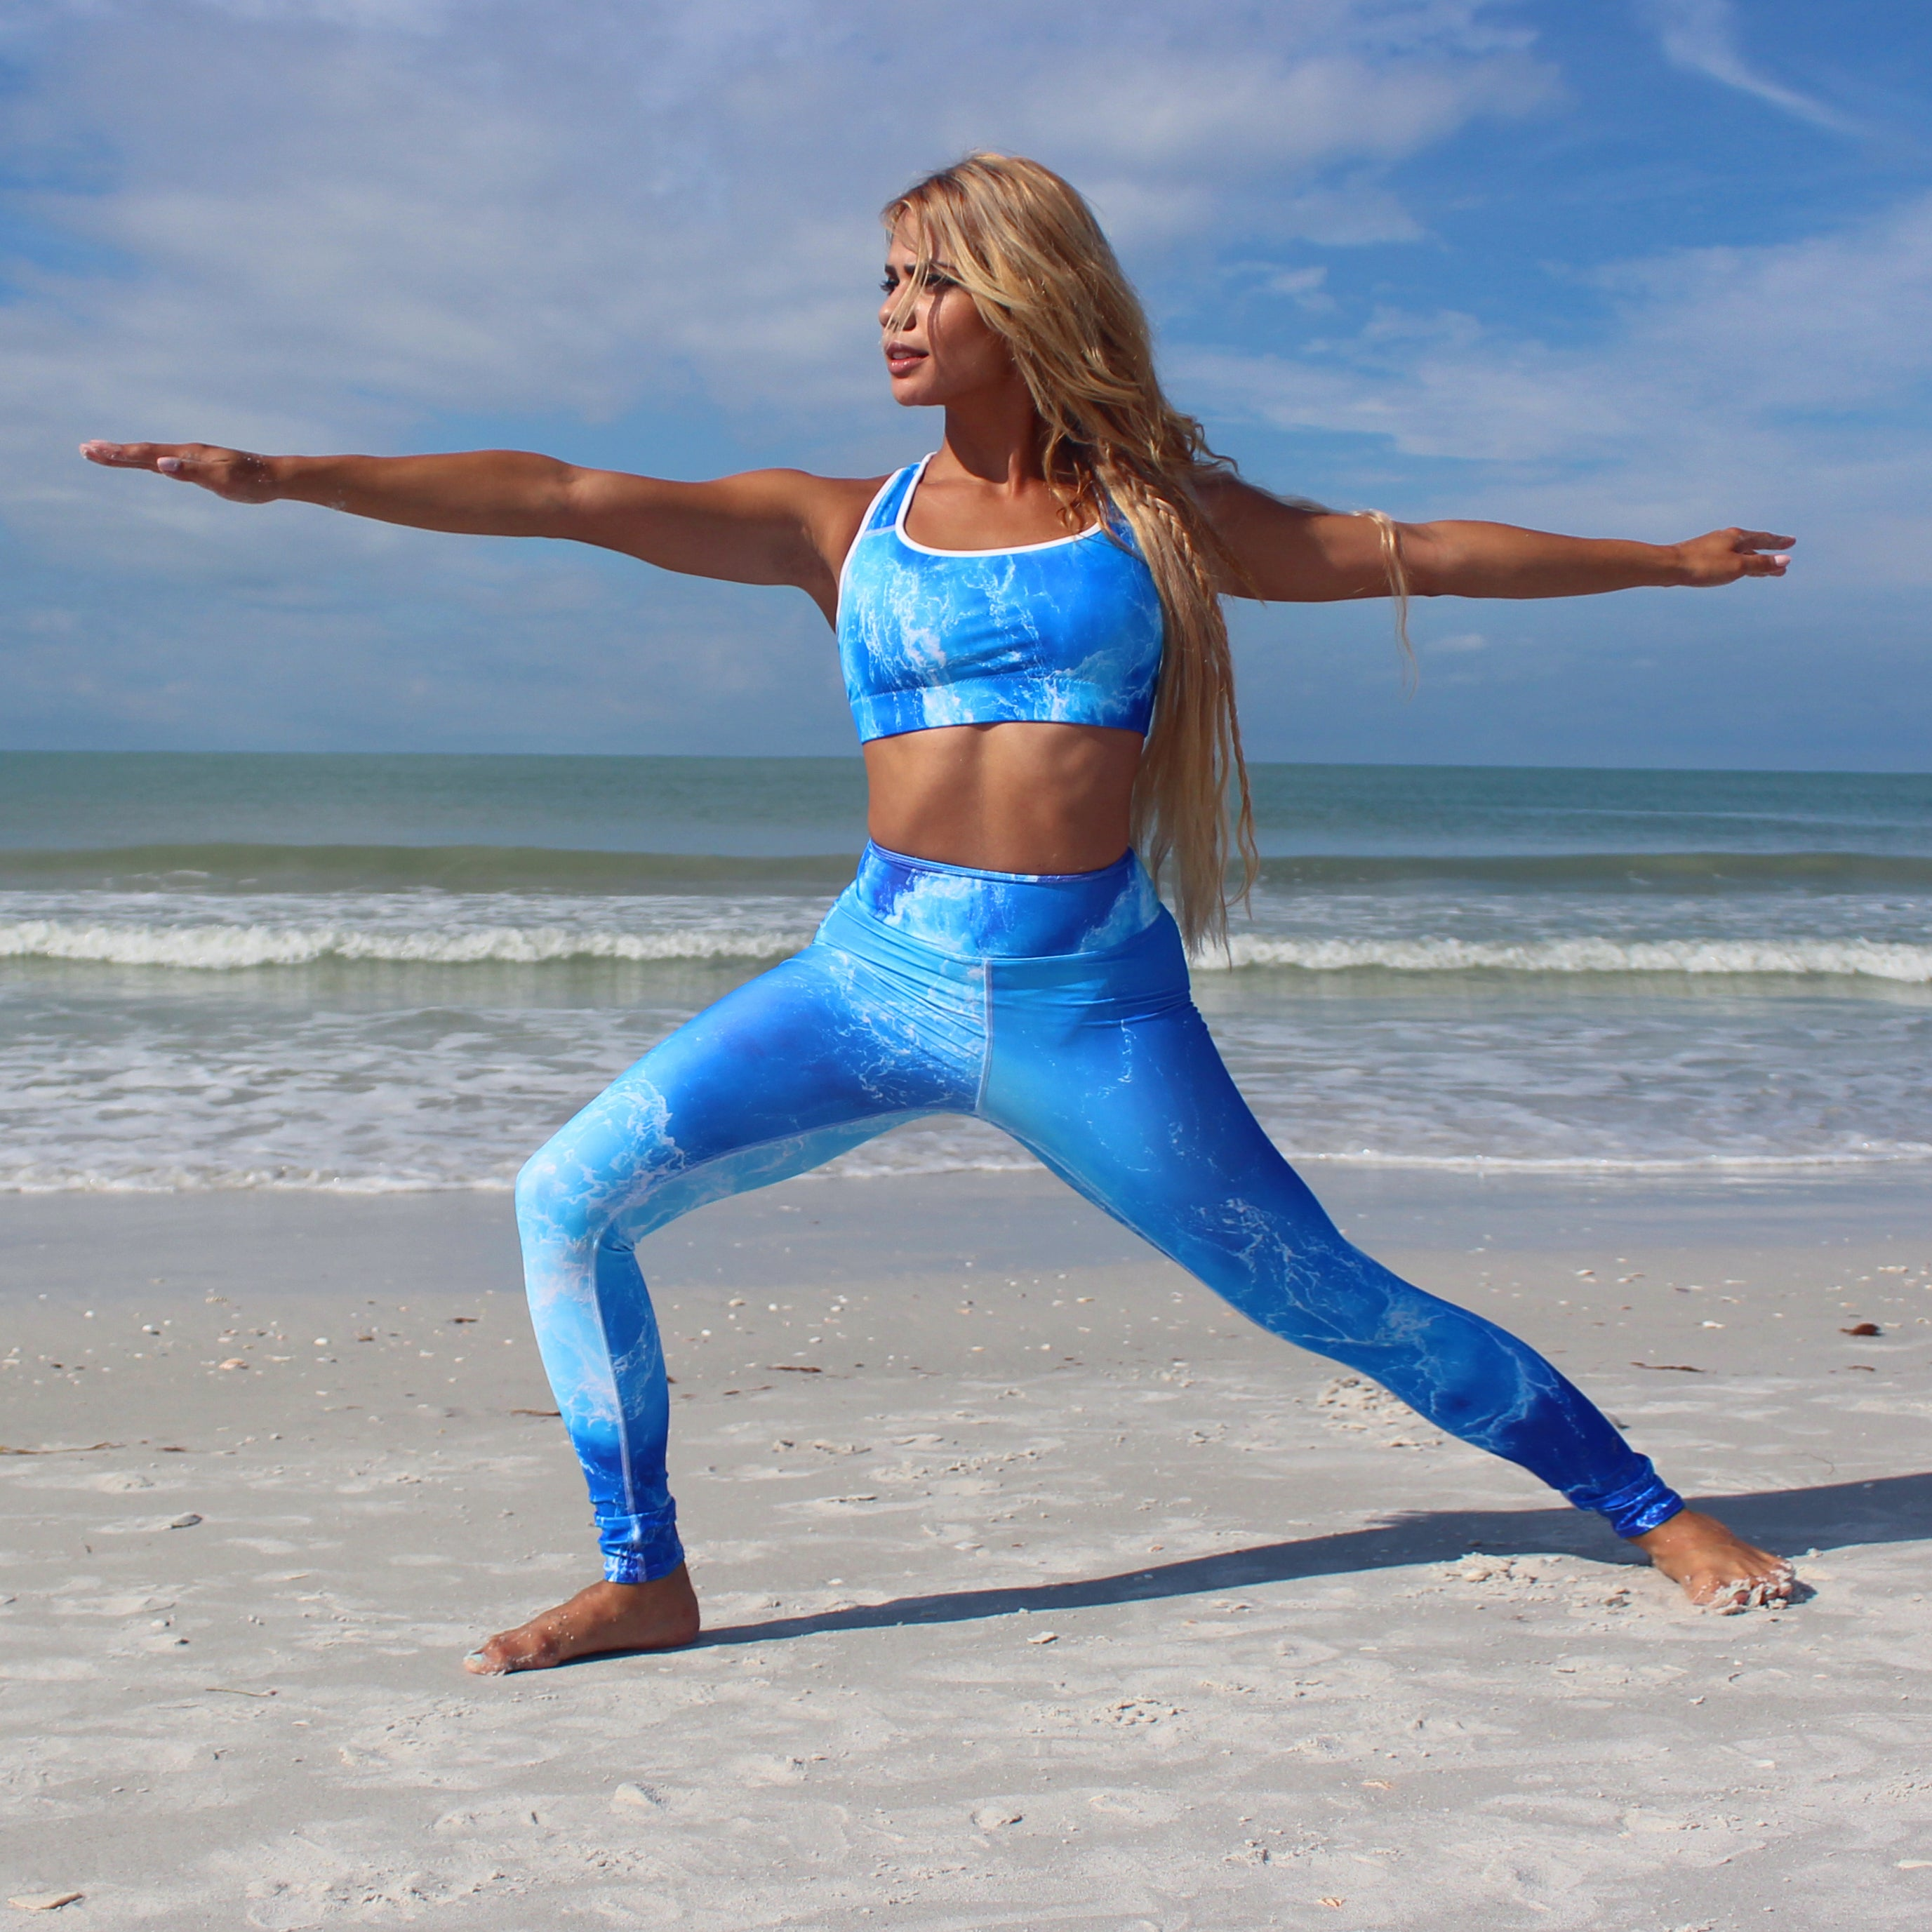 Deep Blue Ocean Sports bra - Cape Cali